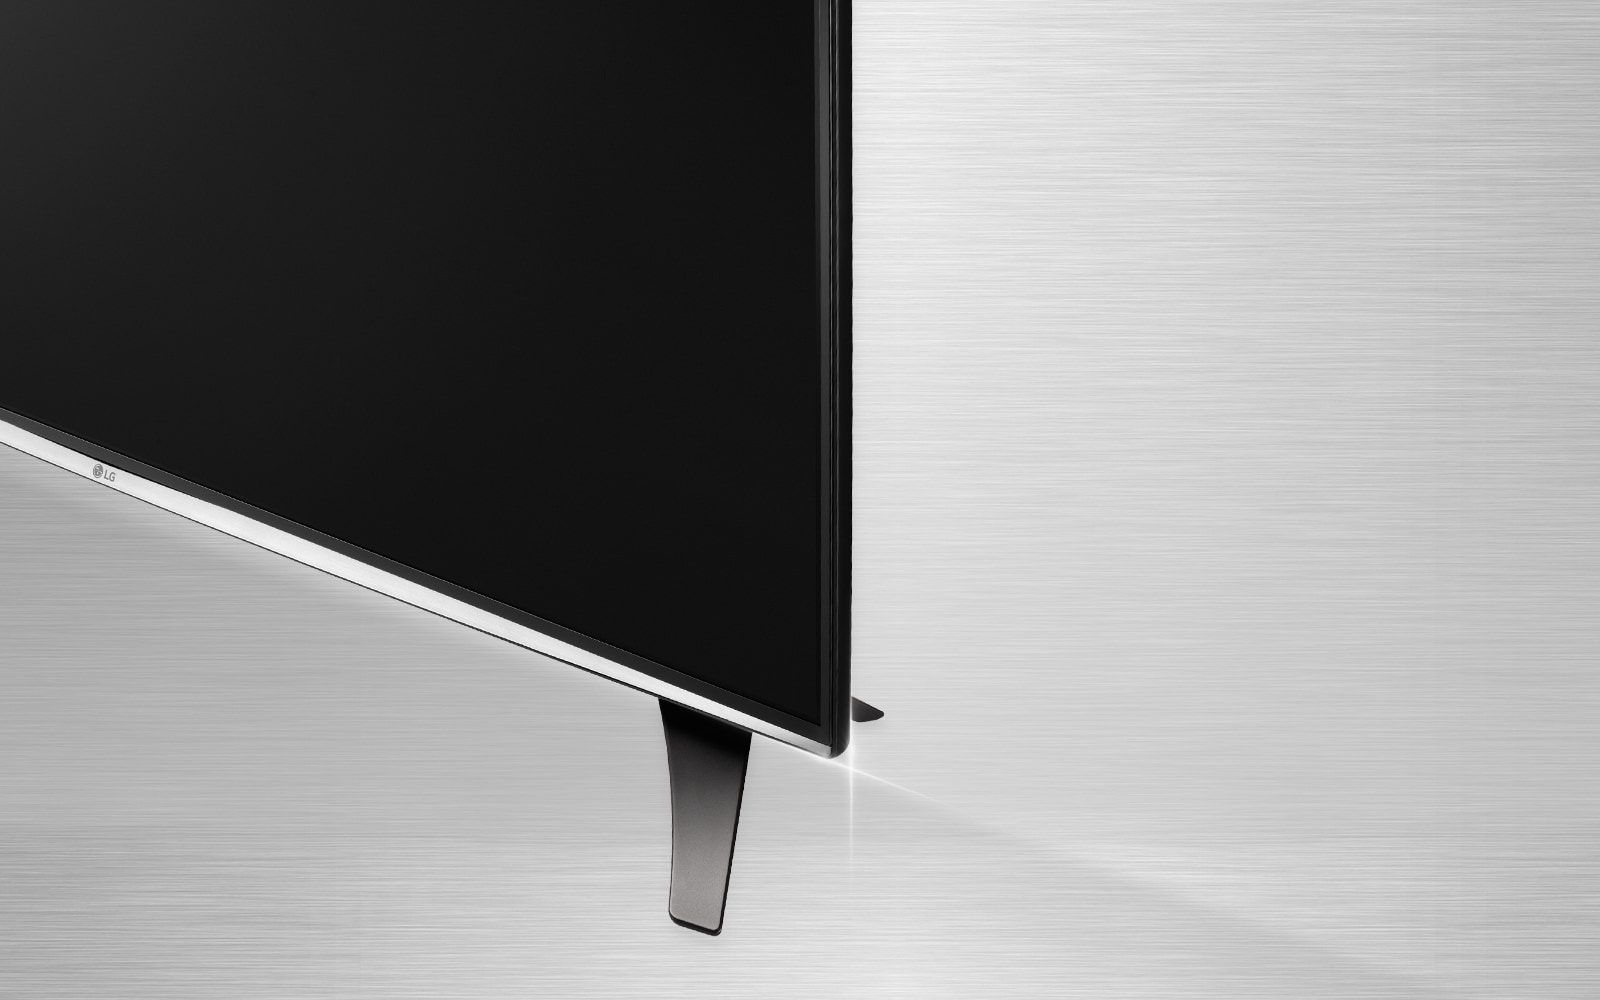 LG TV's - ULTRA Slim